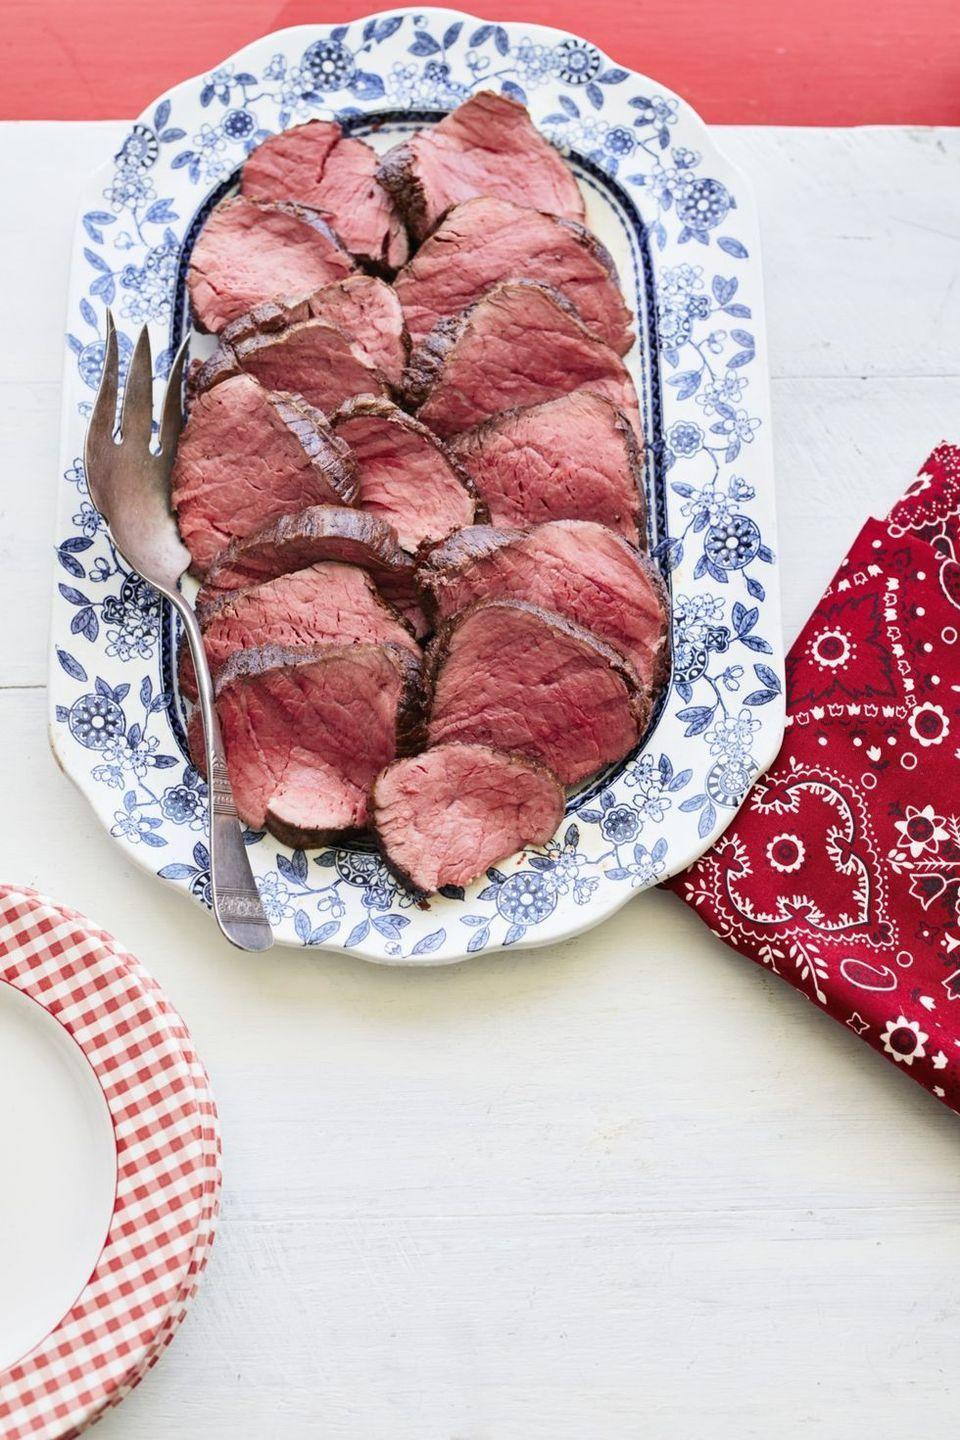 """<p>Ladd's beef tenderloin is <em>not</em> to be missed. It's the stuff of legend in the Drummond house!</p><p><strong><a href=""""https://www.thepioneerwoman.com/food-cooking/recipes/a12122/ladds-grilled-tenderloin/"""" rel=""""nofollow noopener"""" target=""""_blank"""" data-ylk=""""slk:Get the recipe"""" class=""""link rapid-noclick-resp"""">Get the recipe</a>.</strong></p><p><a class=""""link rapid-noclick-resp"""" href=""""https://go.redirectingat.com?id=74968X1596630&url=https%3A%2F%2Fwww.walmart.com%2Fbrowse%2Fhome%2Fthe-pioneer-woman-cookware%2F4044_623679_6182459_9190581&sref=https%3A%2F%2Fwww.thepioneerwoman.com%2Ffood-cooking%2Fmeals-menus%2Fg35191871%2Fsteak-dinner-recipes%2F"""" rel=""""nofollow noopener"""" target=""""_blank"""" data-ylk=""""slk:SHOP COOKWARE"""">SHOP COOKWARE</a></p>"""